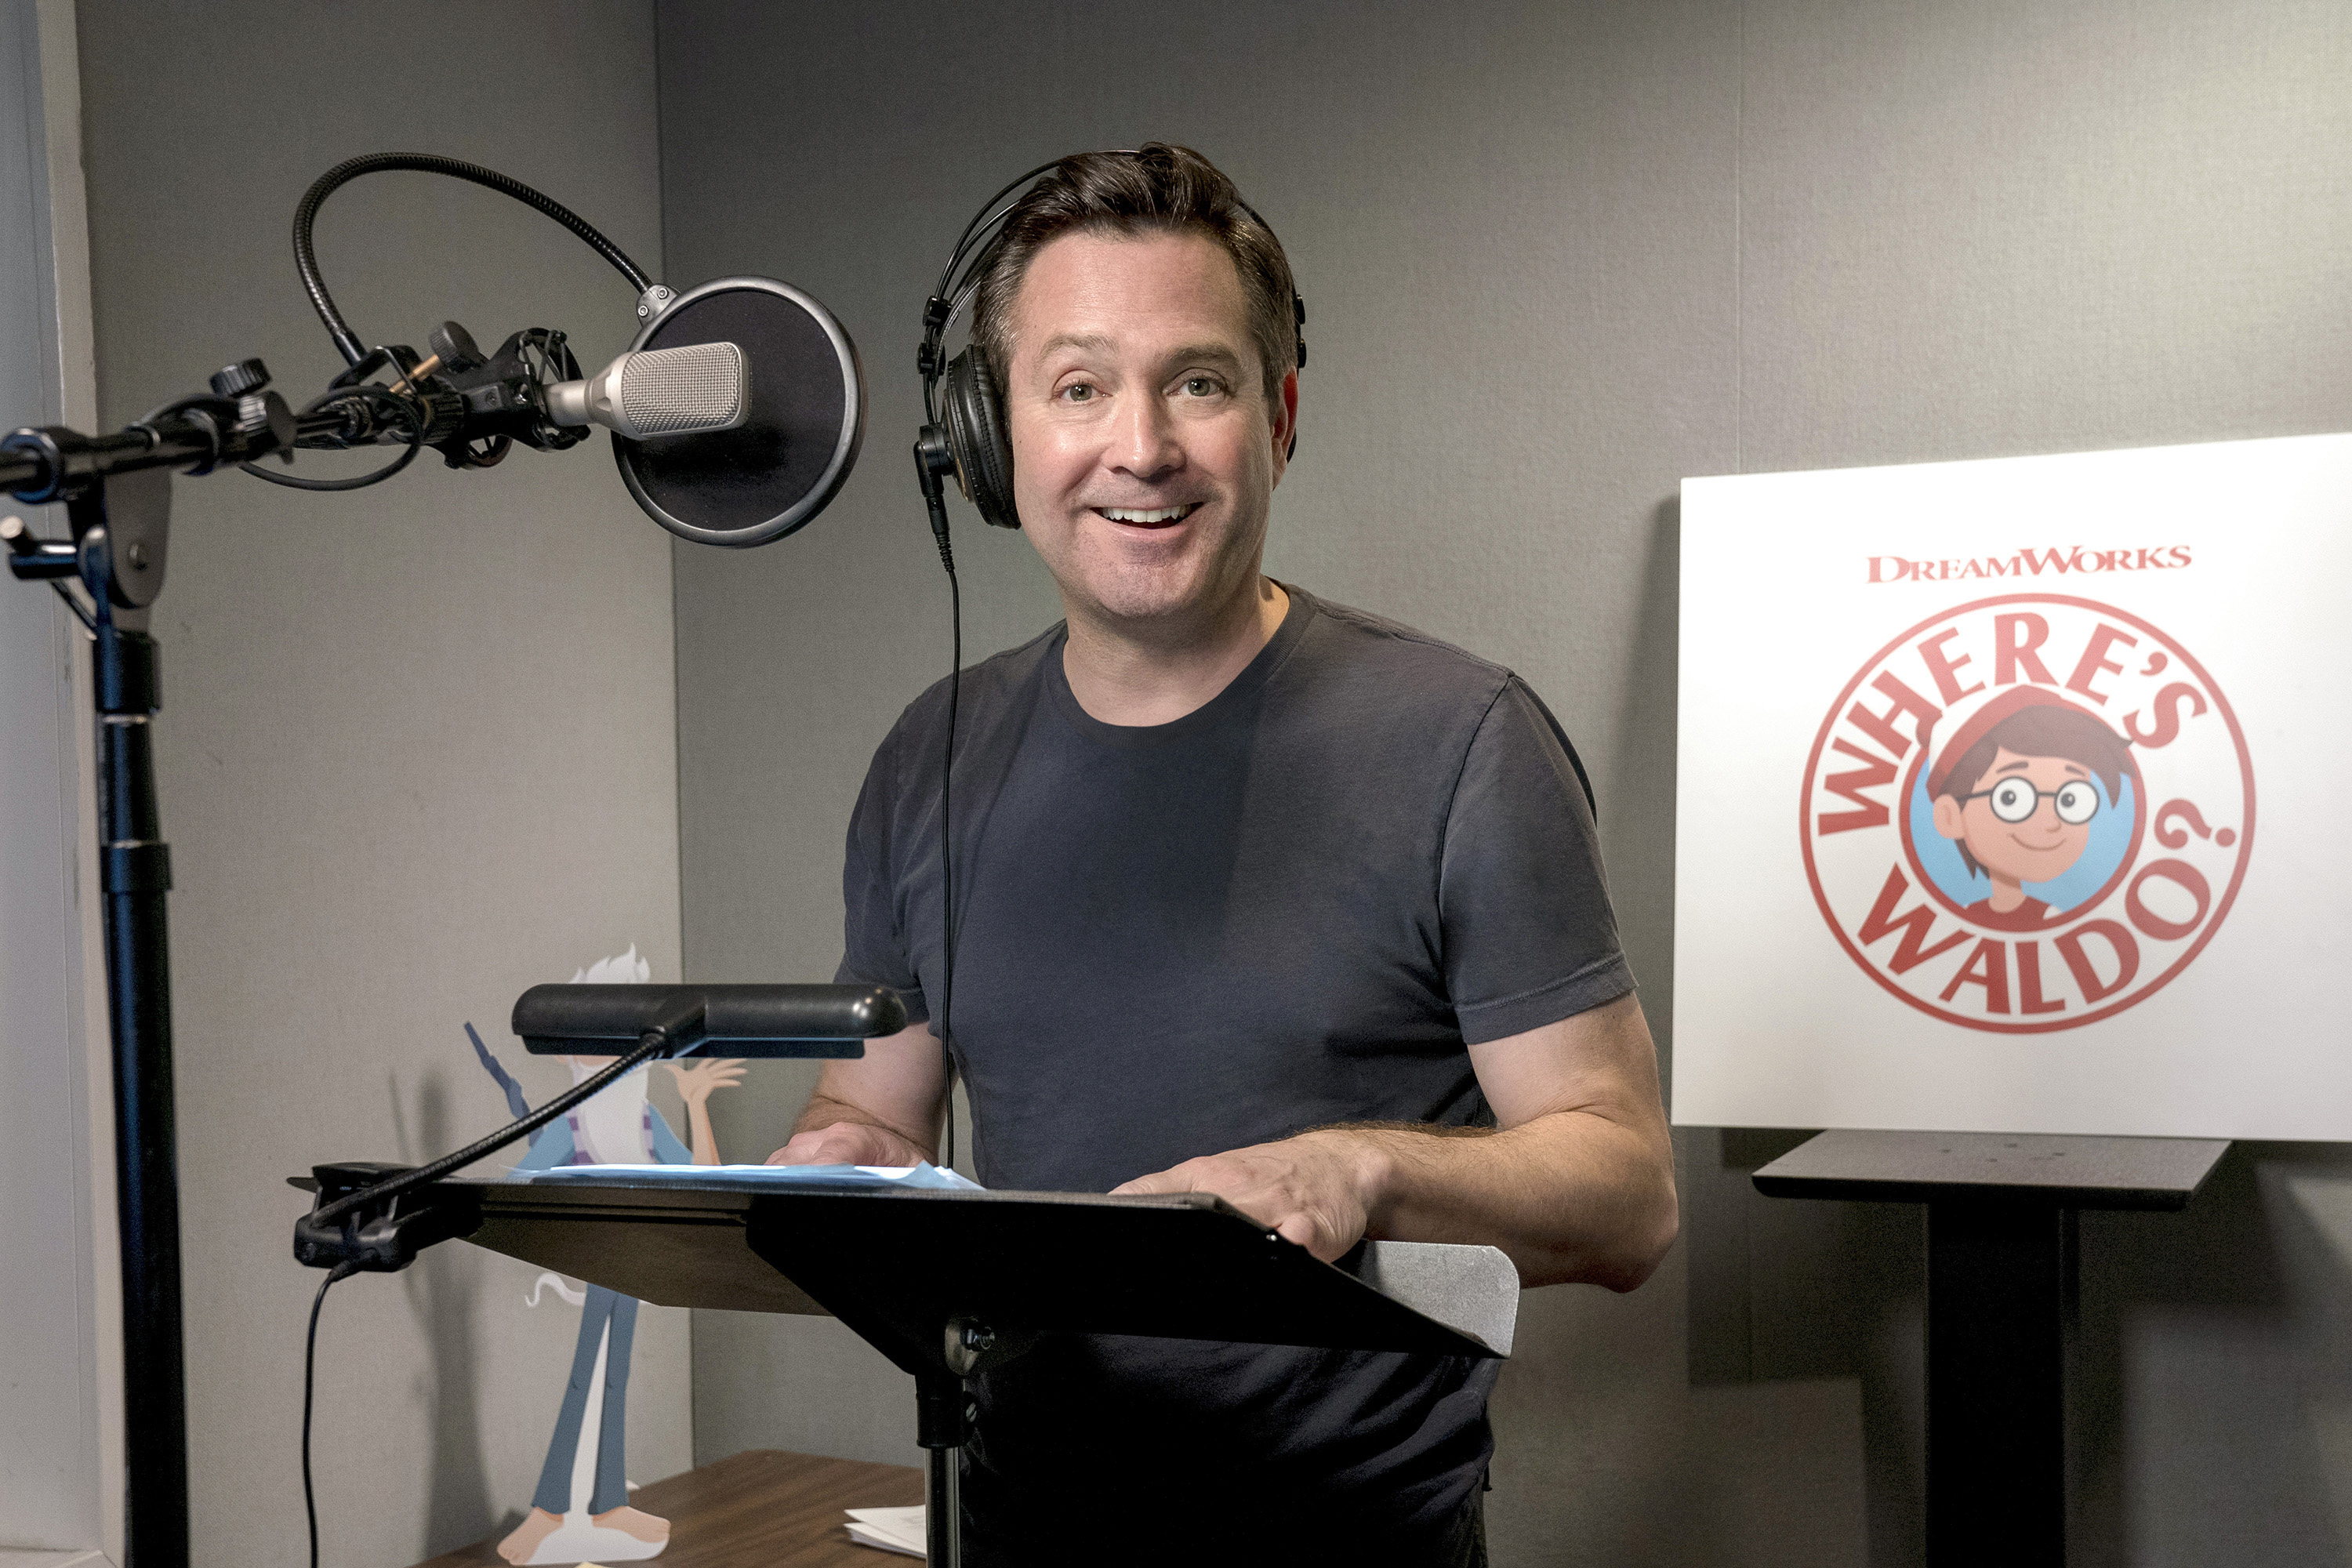 Thomas Lennon, Where's Waldo?